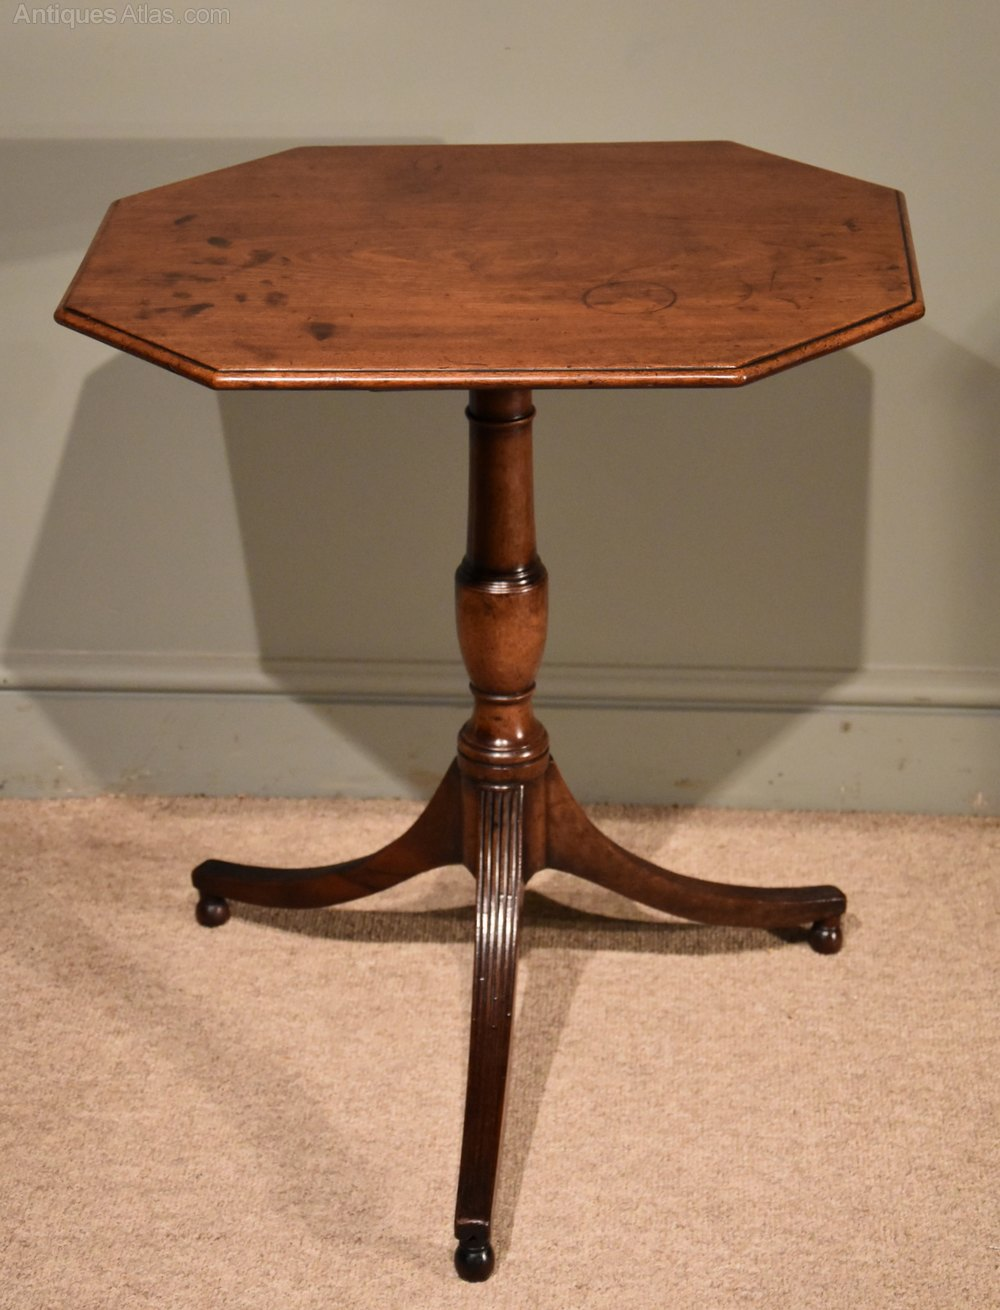 Regency Period Mahogany Rectangular Tripod Table ...